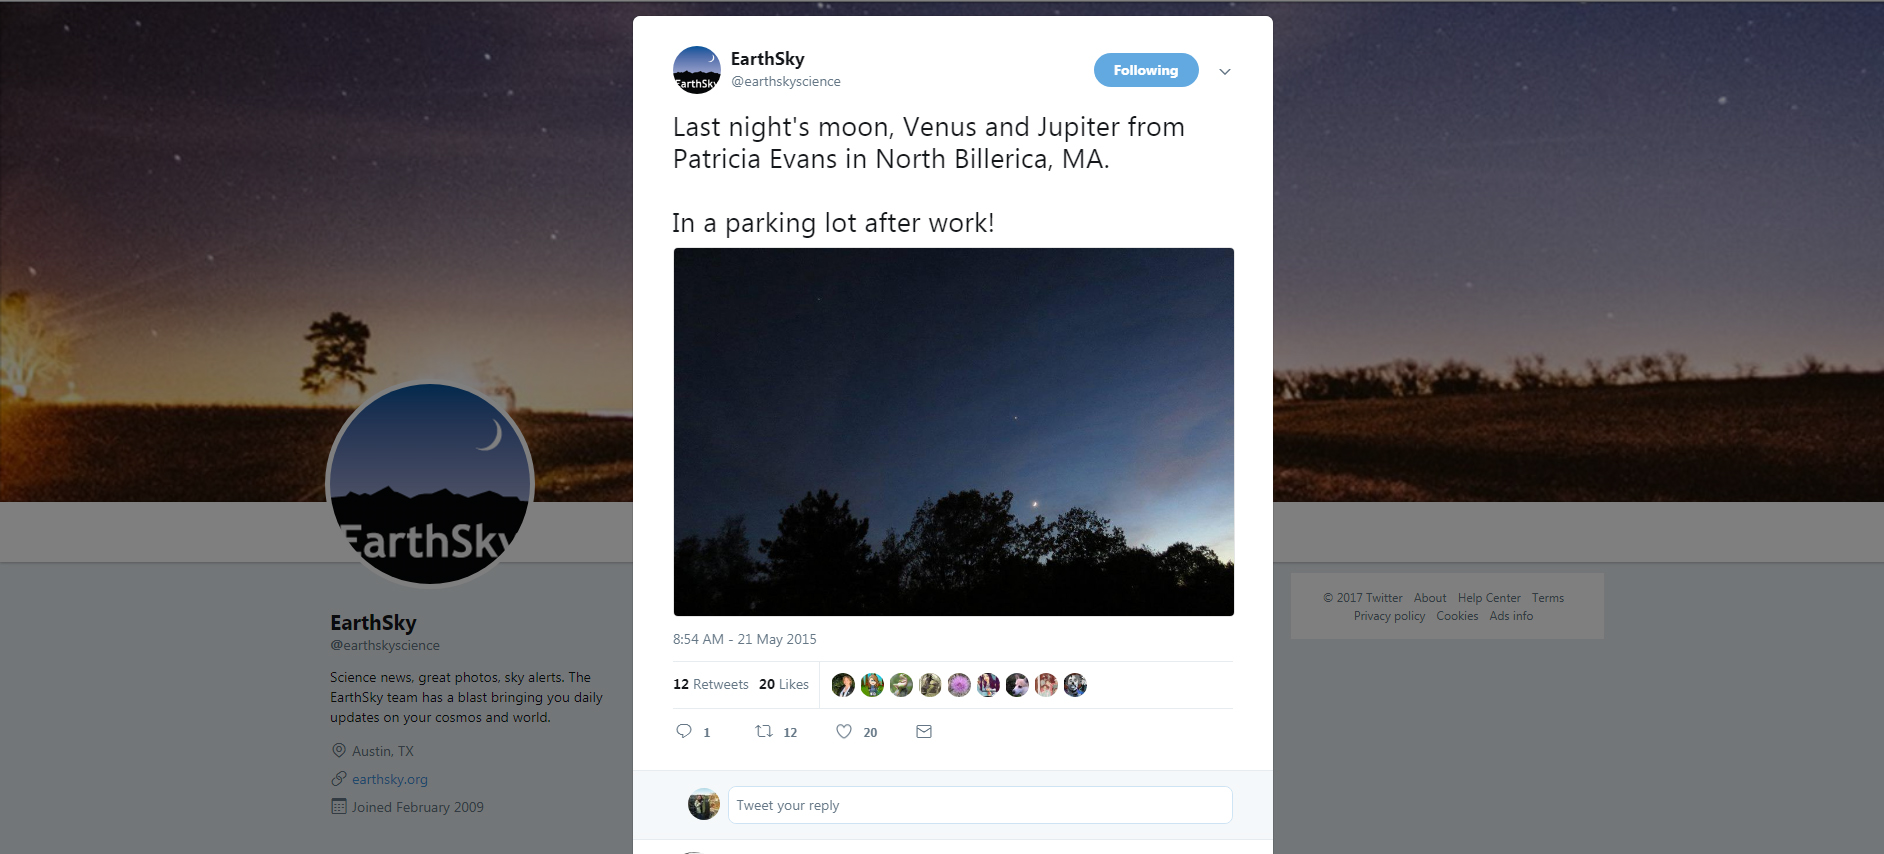 EarthSky @ earthskyscience   21 May 2015   Last night's moon, Venus and Jupiter from Patricia Evans in North Billerica, MA. In a parking lot after work!  https://twitter.com/earthskyscience/status/601370529682063361